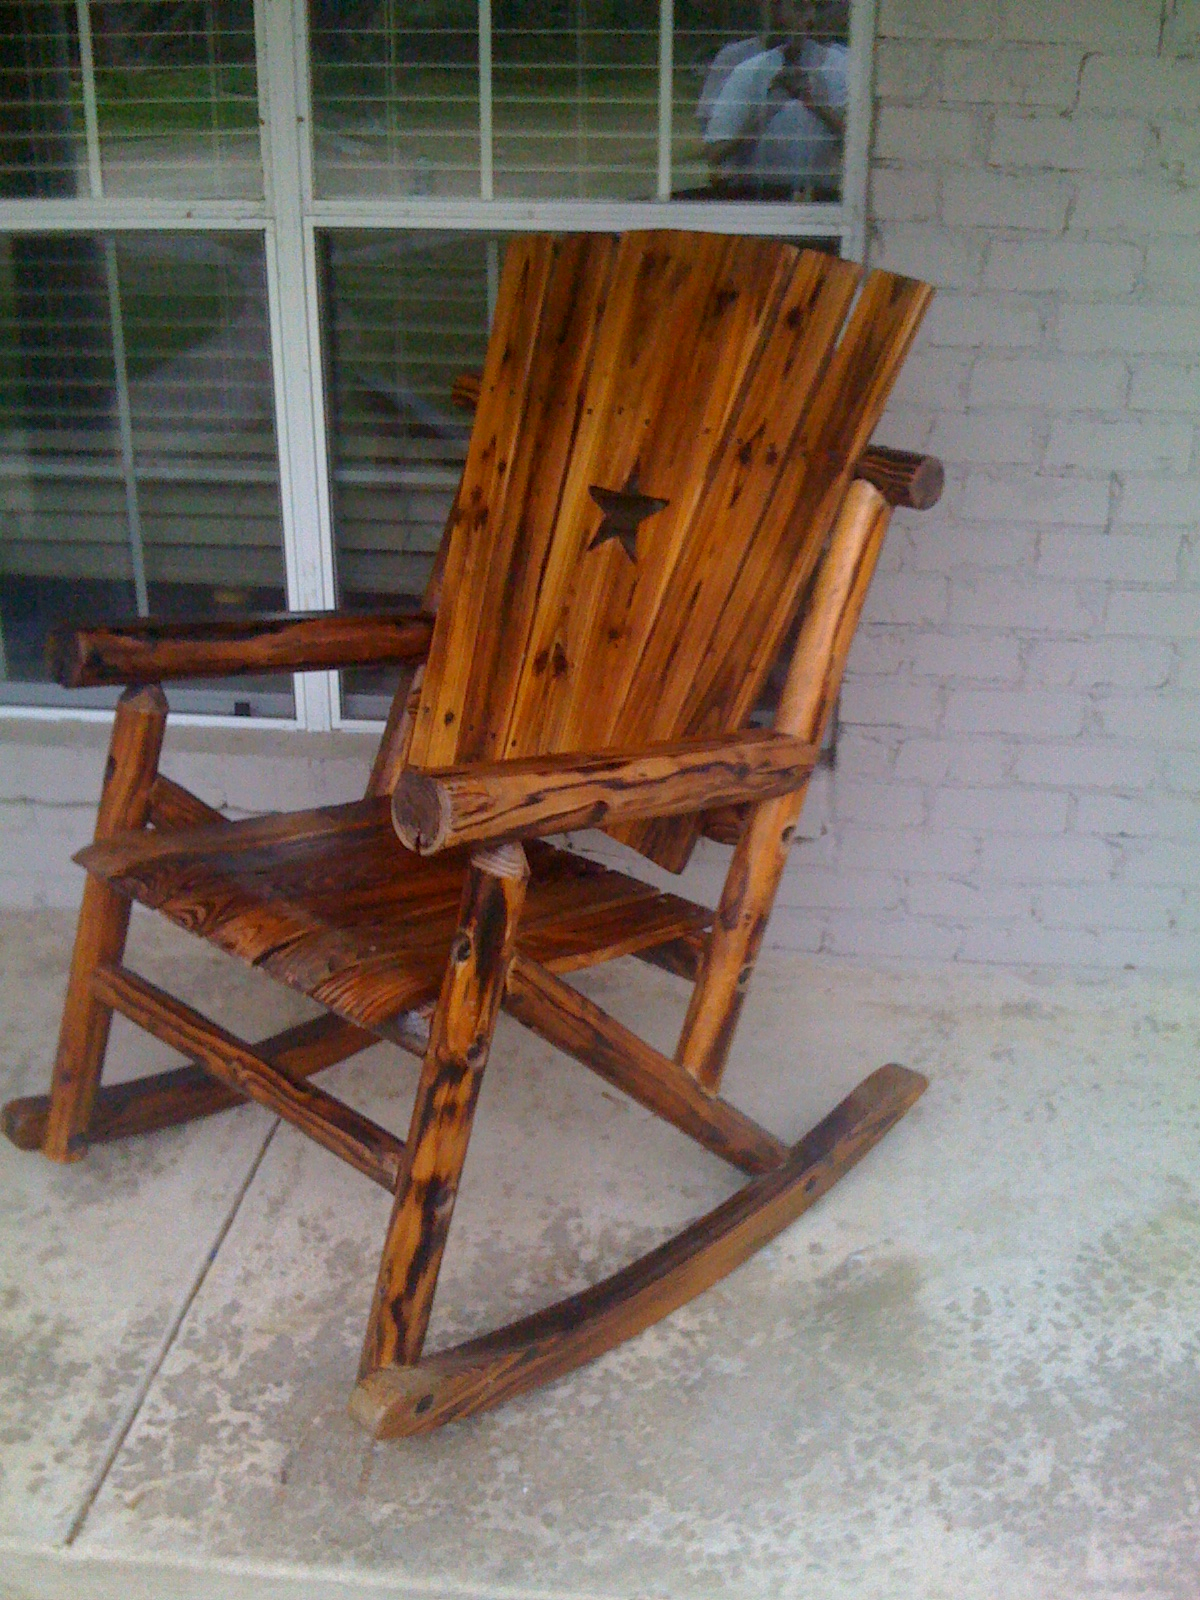 52 Outdoor Wood Rockers, Outdoor Wooden Benches And Rockers With Regard To Traditional Wooden Porch Rocking Chairs (#2 of 20)